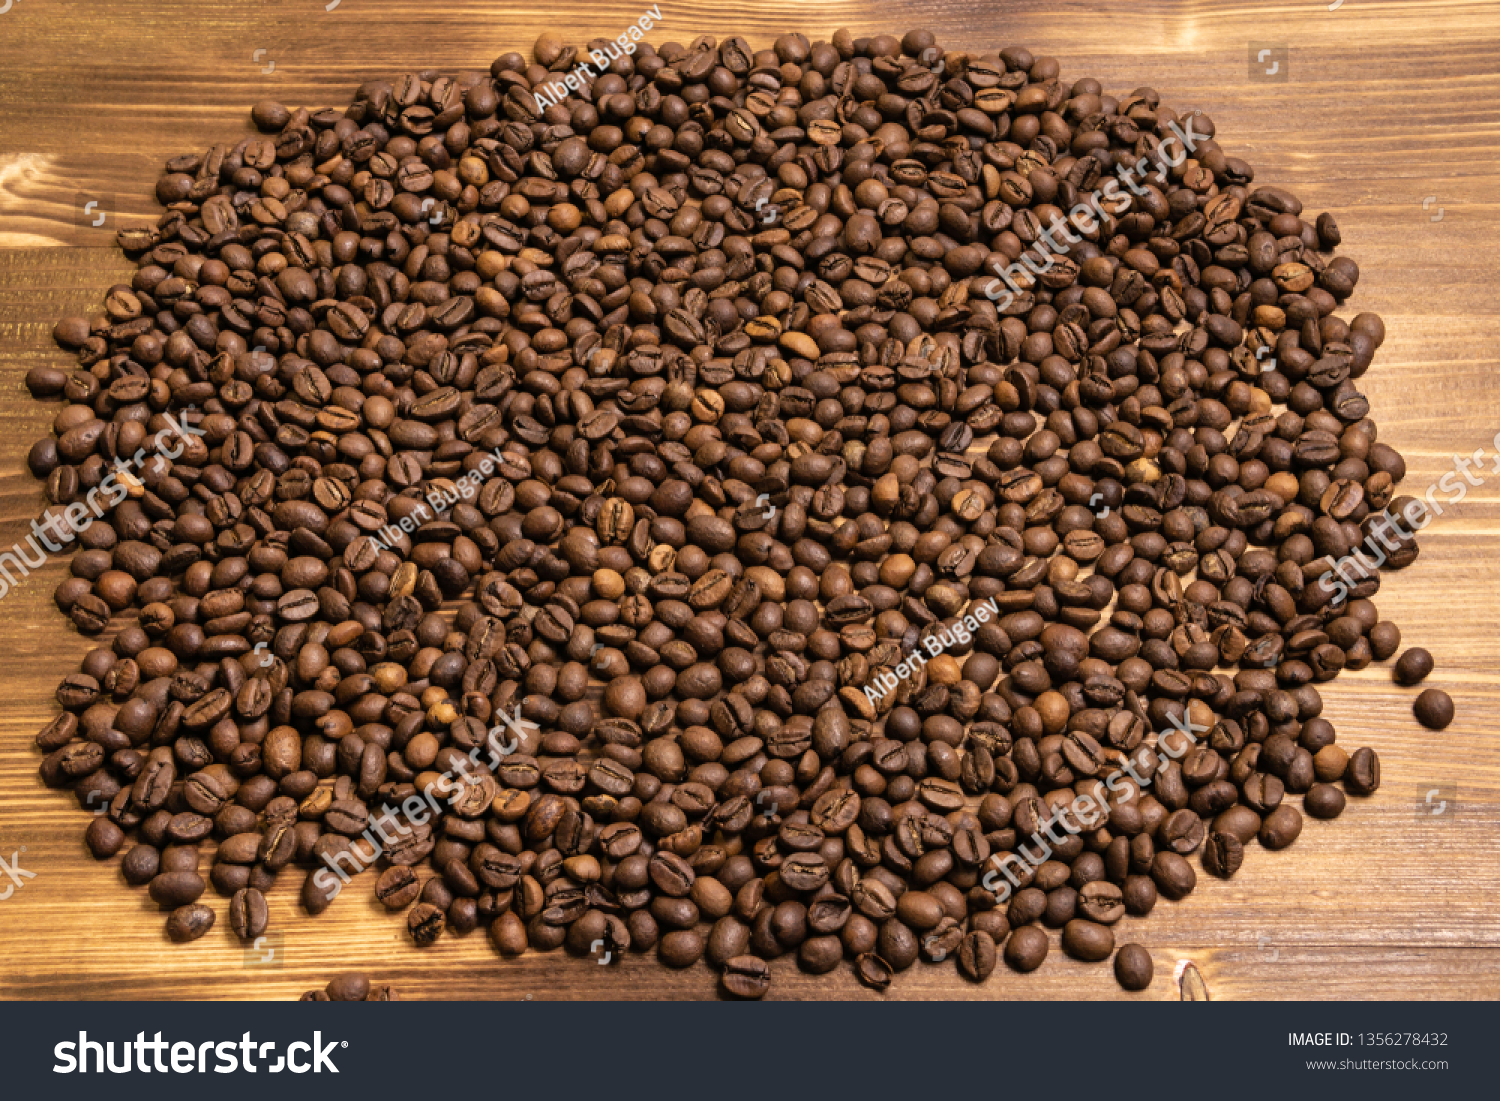 Roasted coffee beans in bulk on a wooden background #1356278432